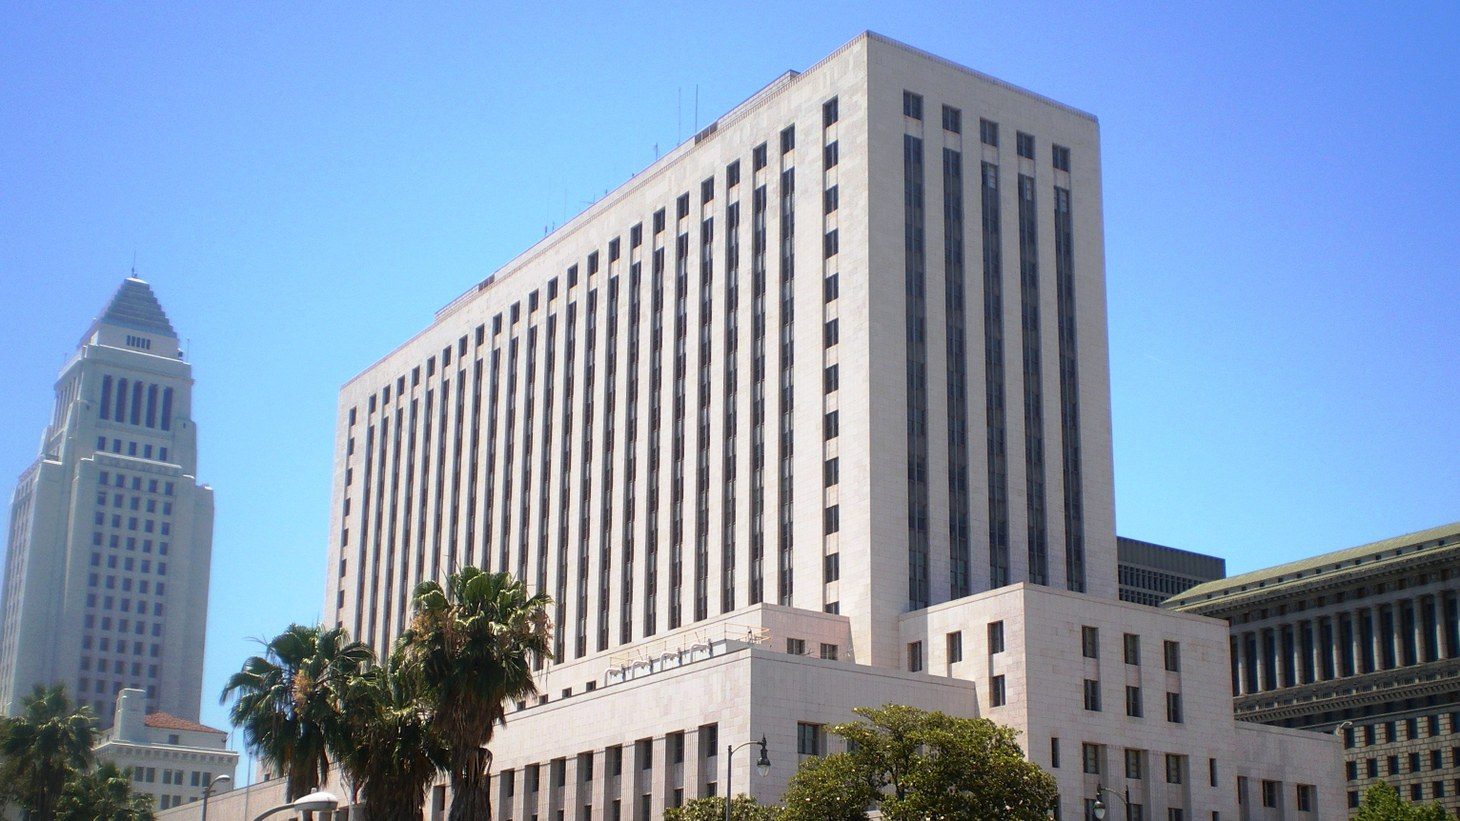 Spring Street Courthouse in Downtown Los Angeles, California.